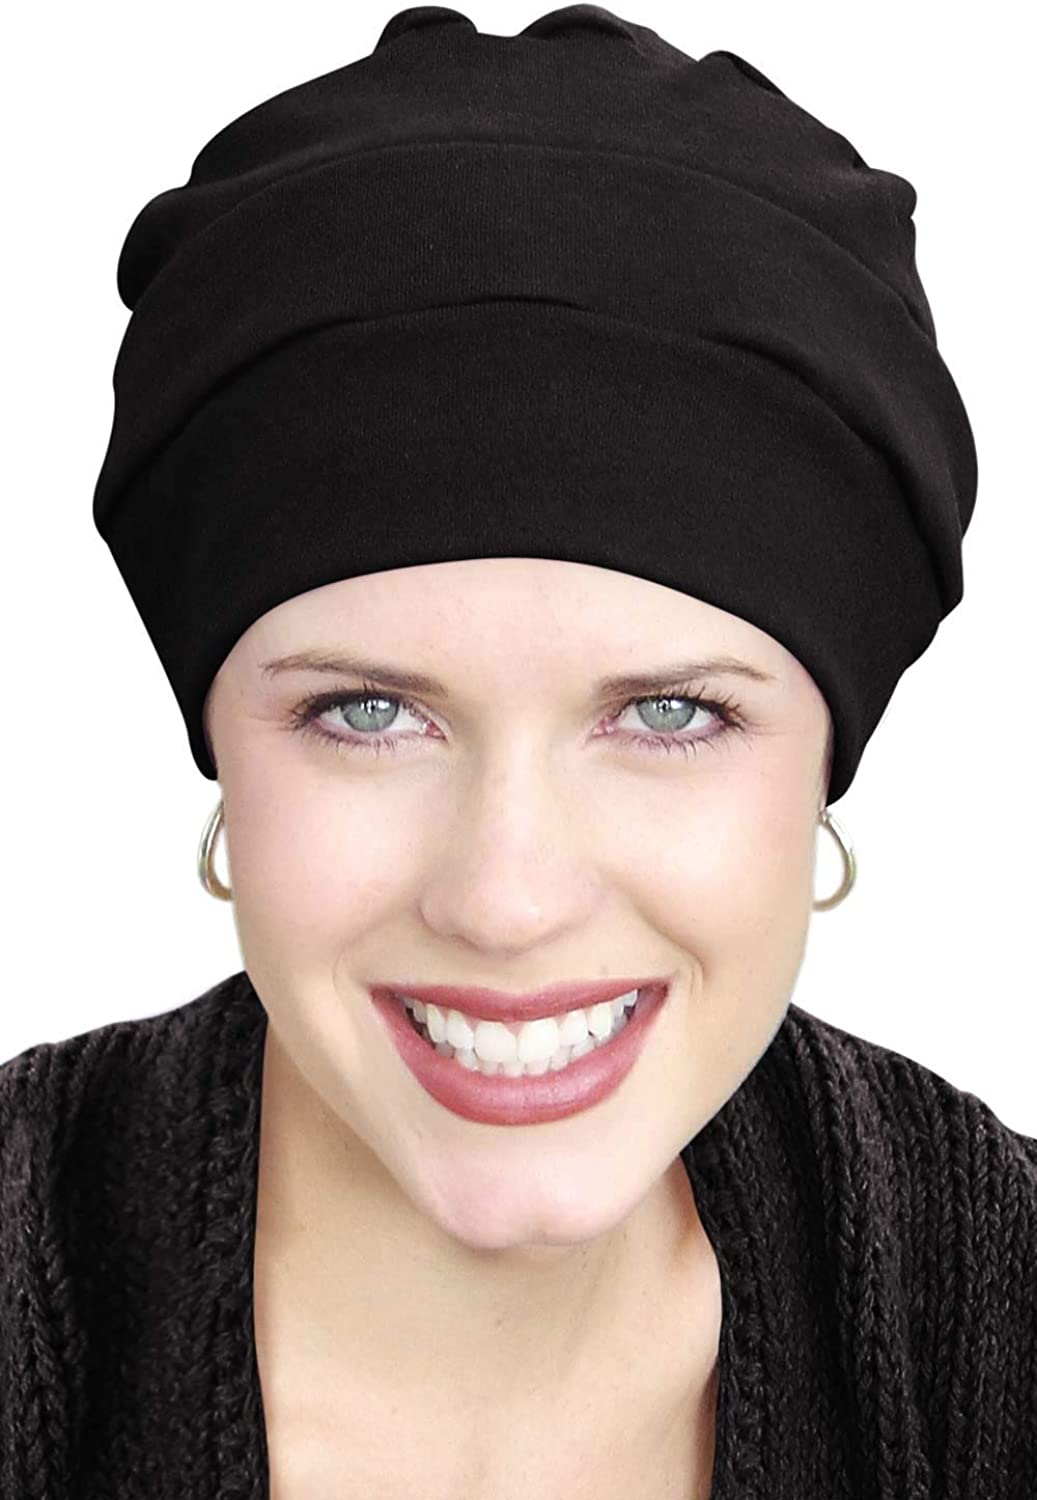 Headcovers Unlimited 100% Cotton Three Seam Turban | Chemo Turbans for Cancer Patients.